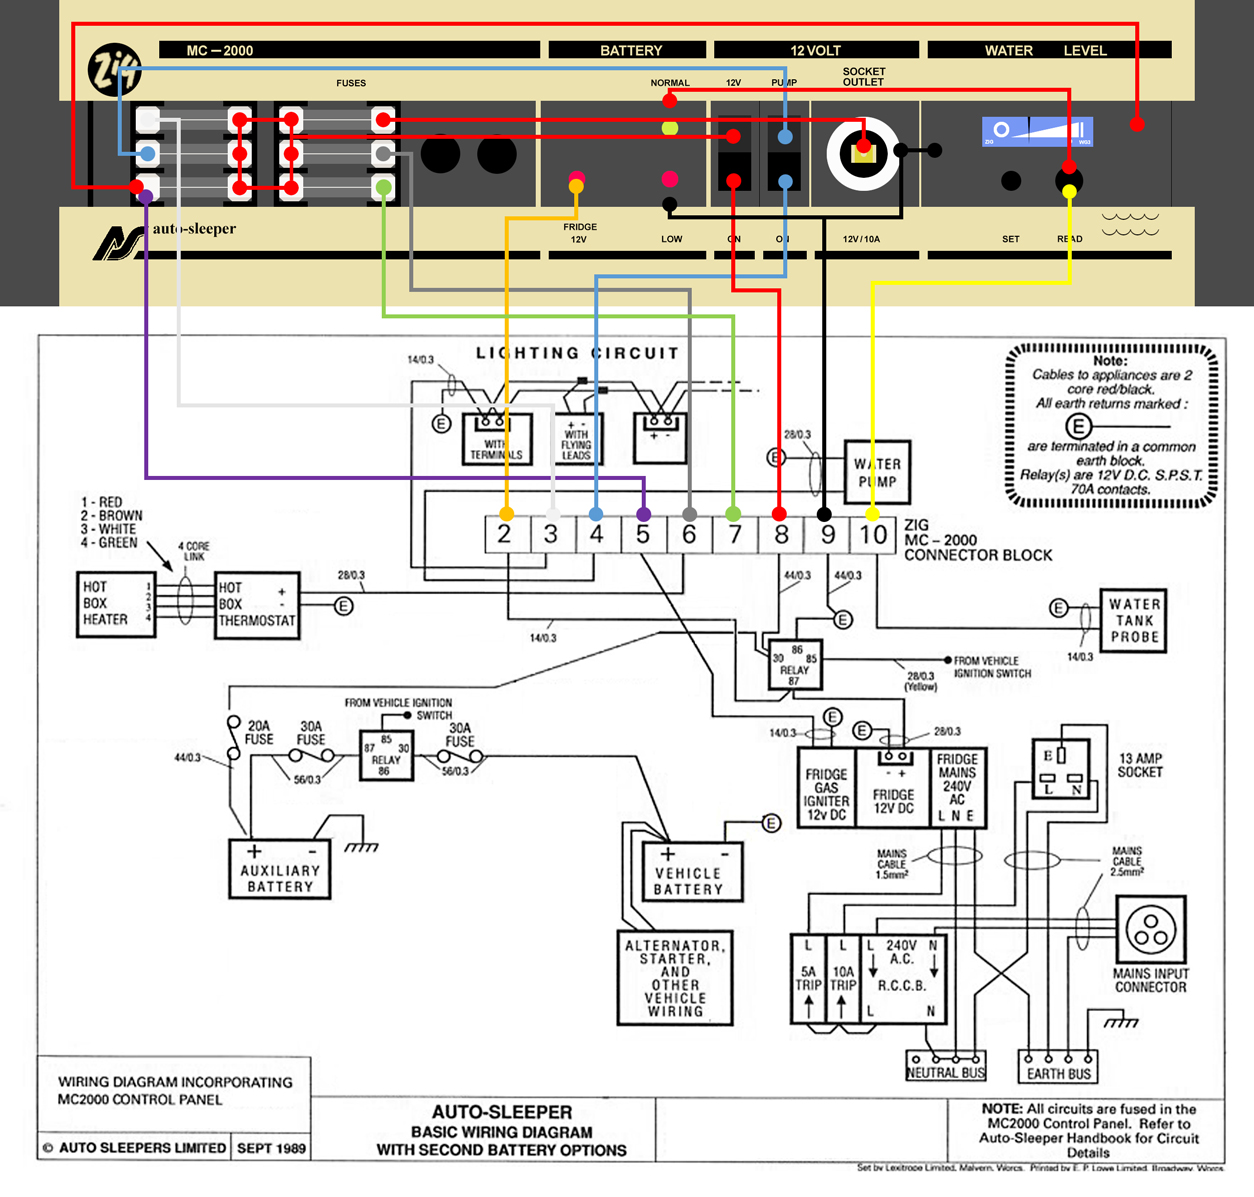 wrg 4232 case ih mx270 wiring diagram. Black Bedroom Furniture Sets. Home Design Ideas